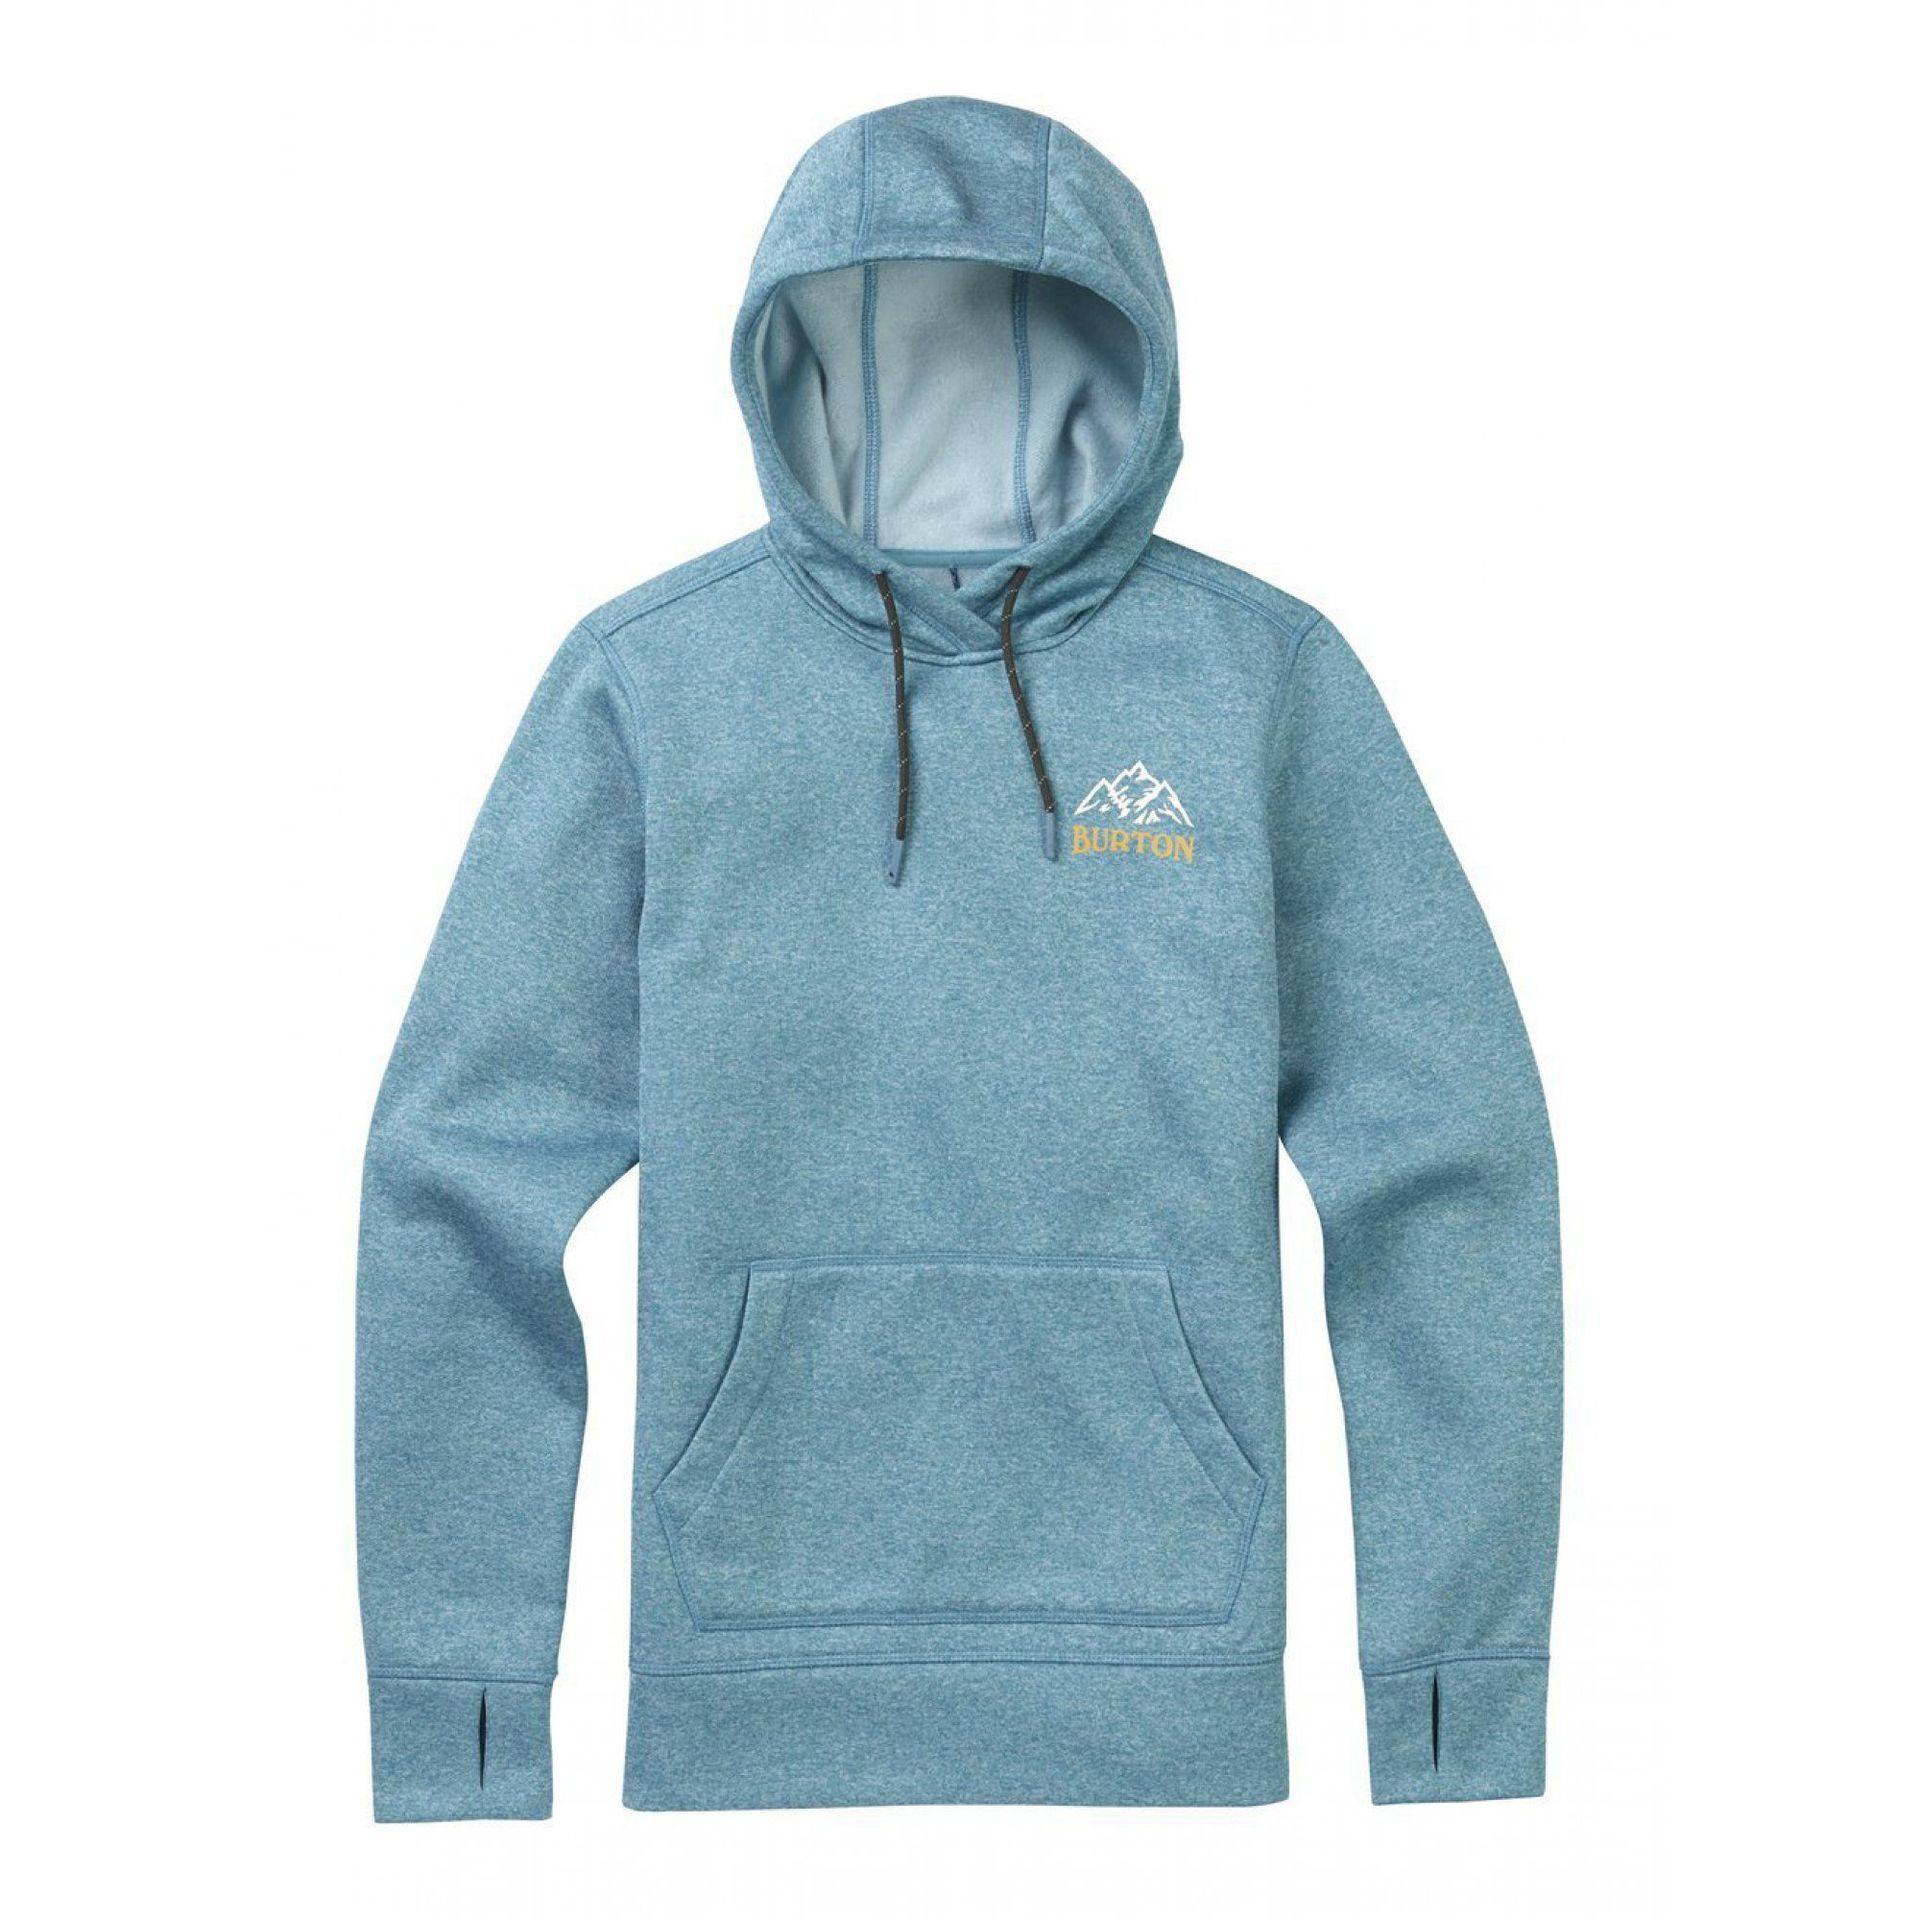 BLUZA BURTON OAK PULLOVER ADRIATIC HEATHER 1